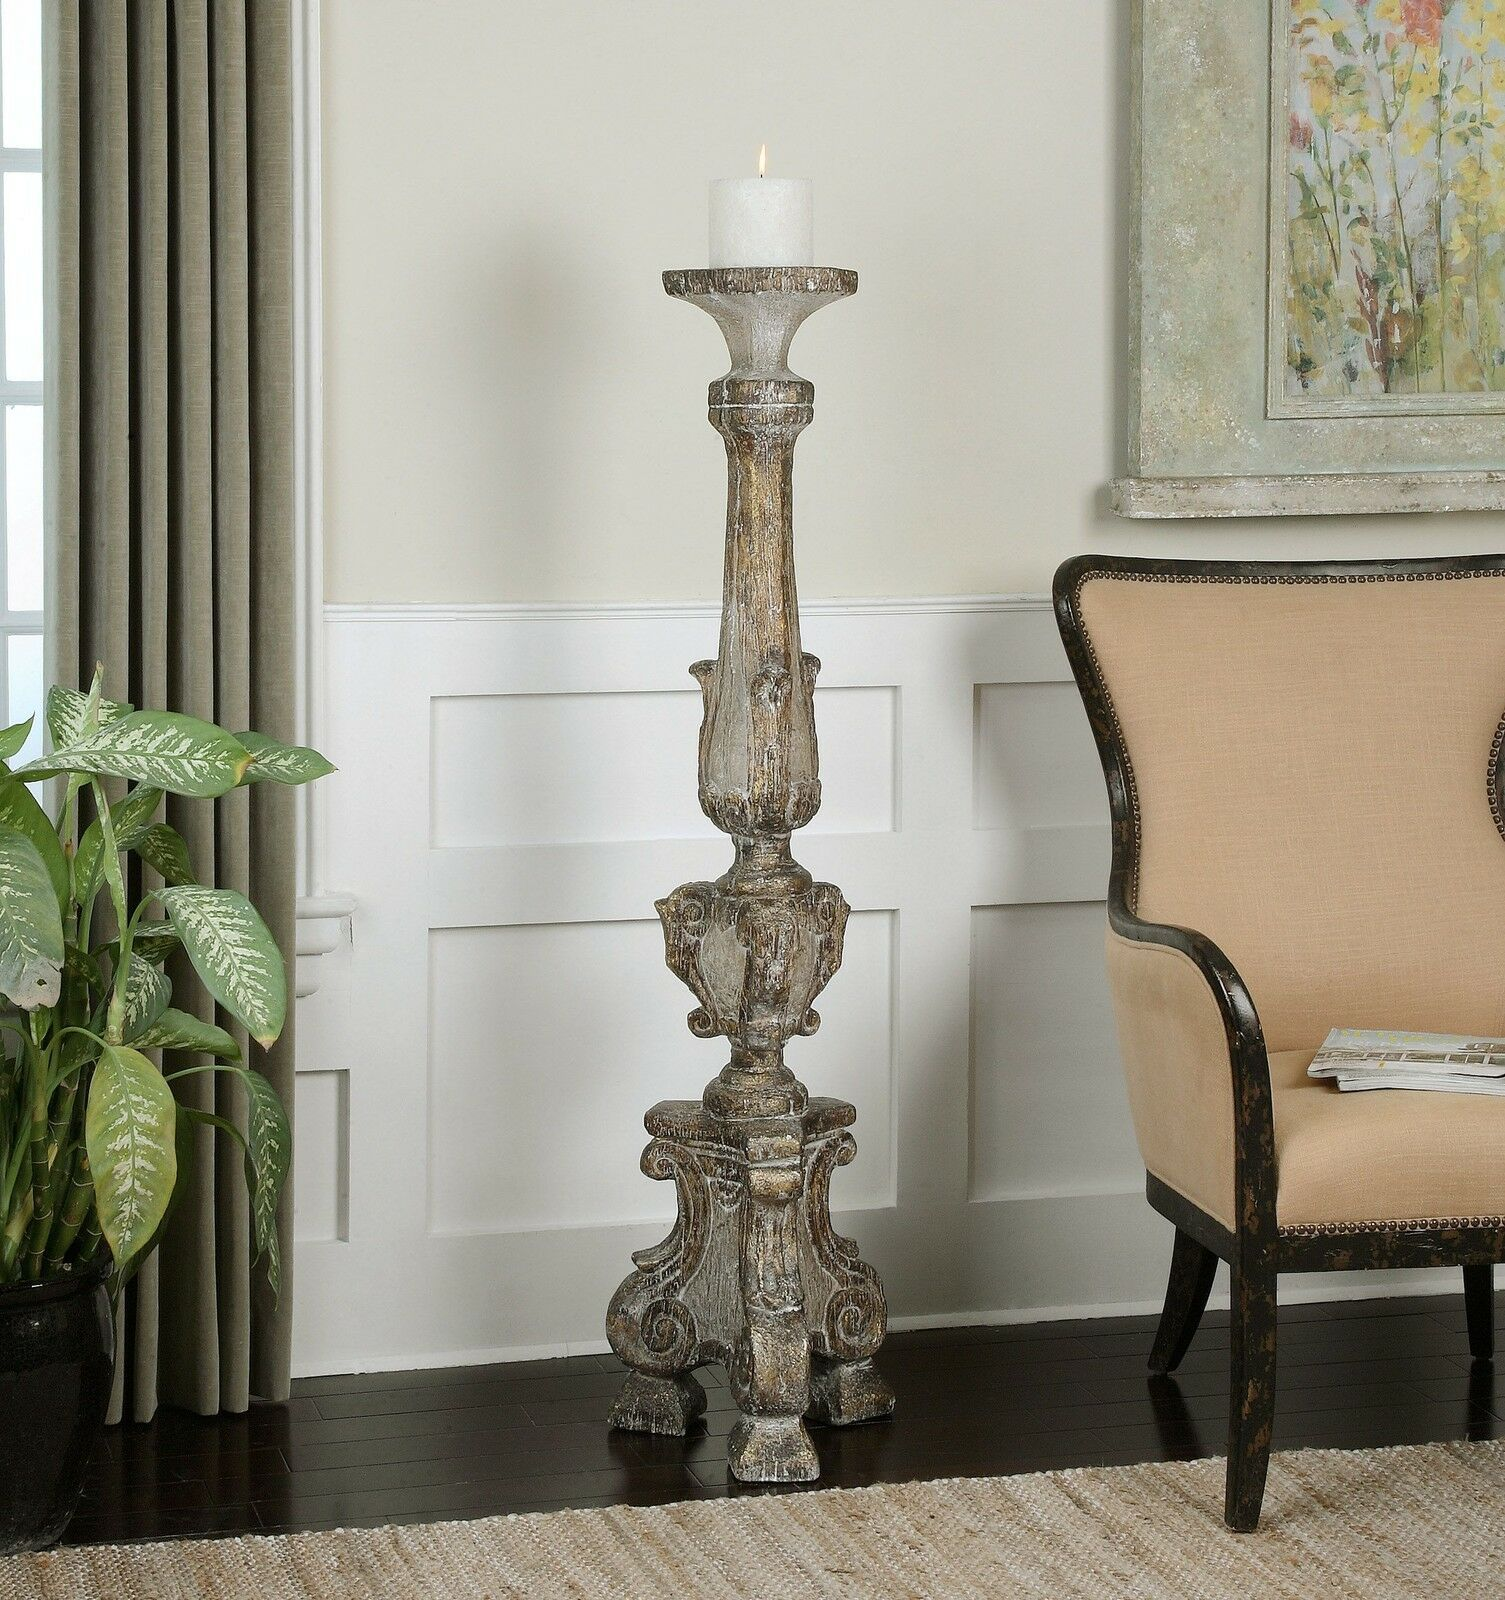 Oversize 57 Floor Candle Holder Old World Tall Distressed 707430505302 Ebay Floor Candle Holders Floor Candle Floor Pillar Candle Holders